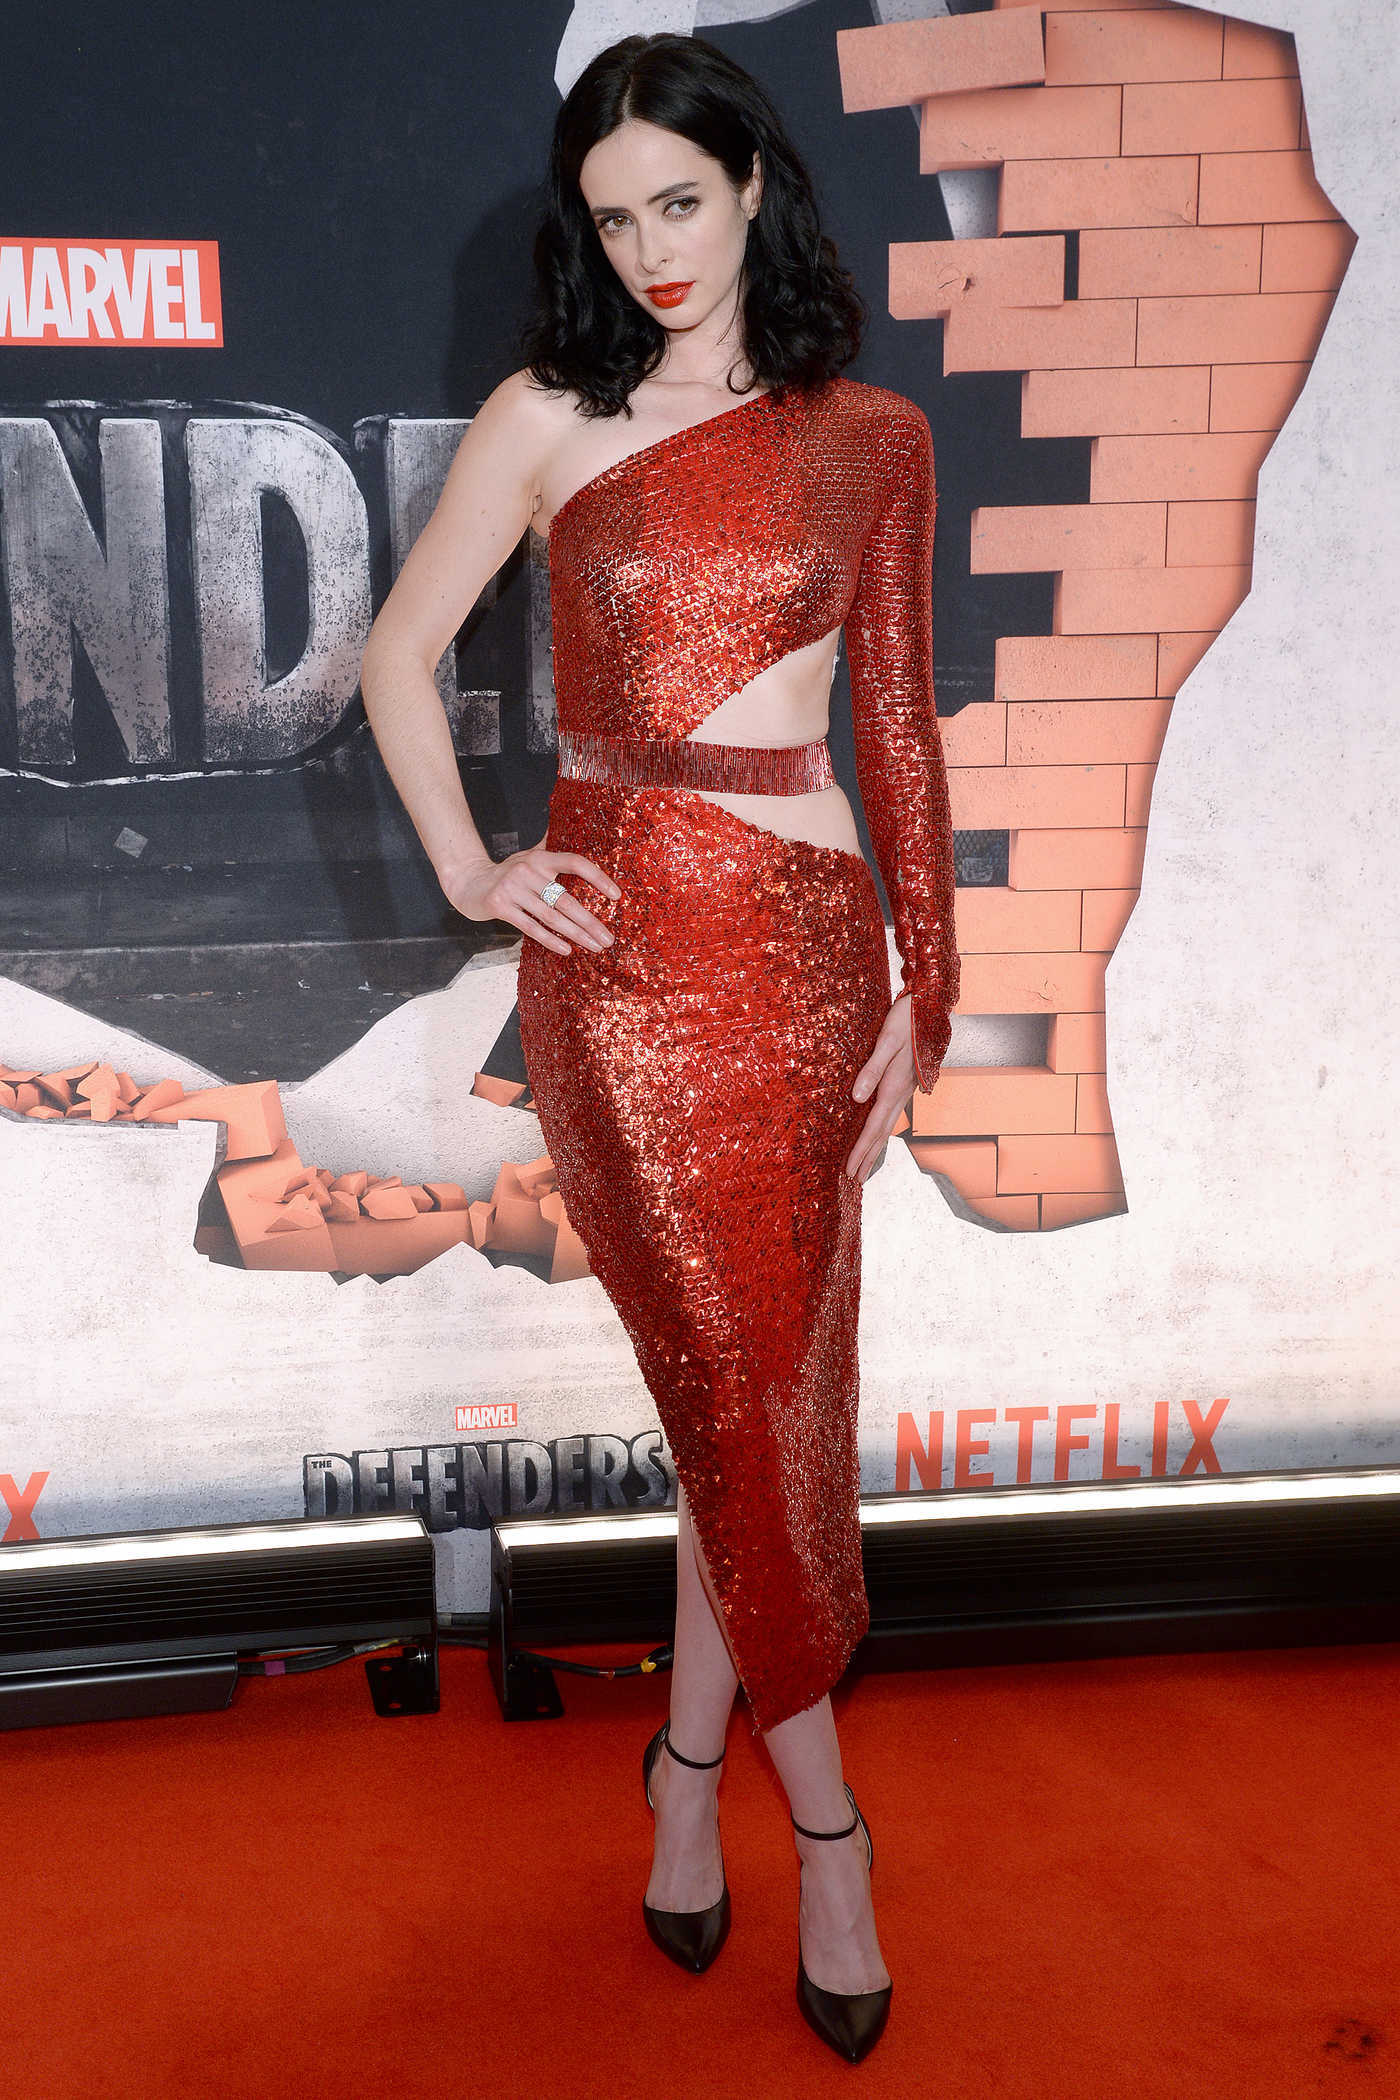 Krysten Ritter at The Defenders Premiere in New York 07/31/2017